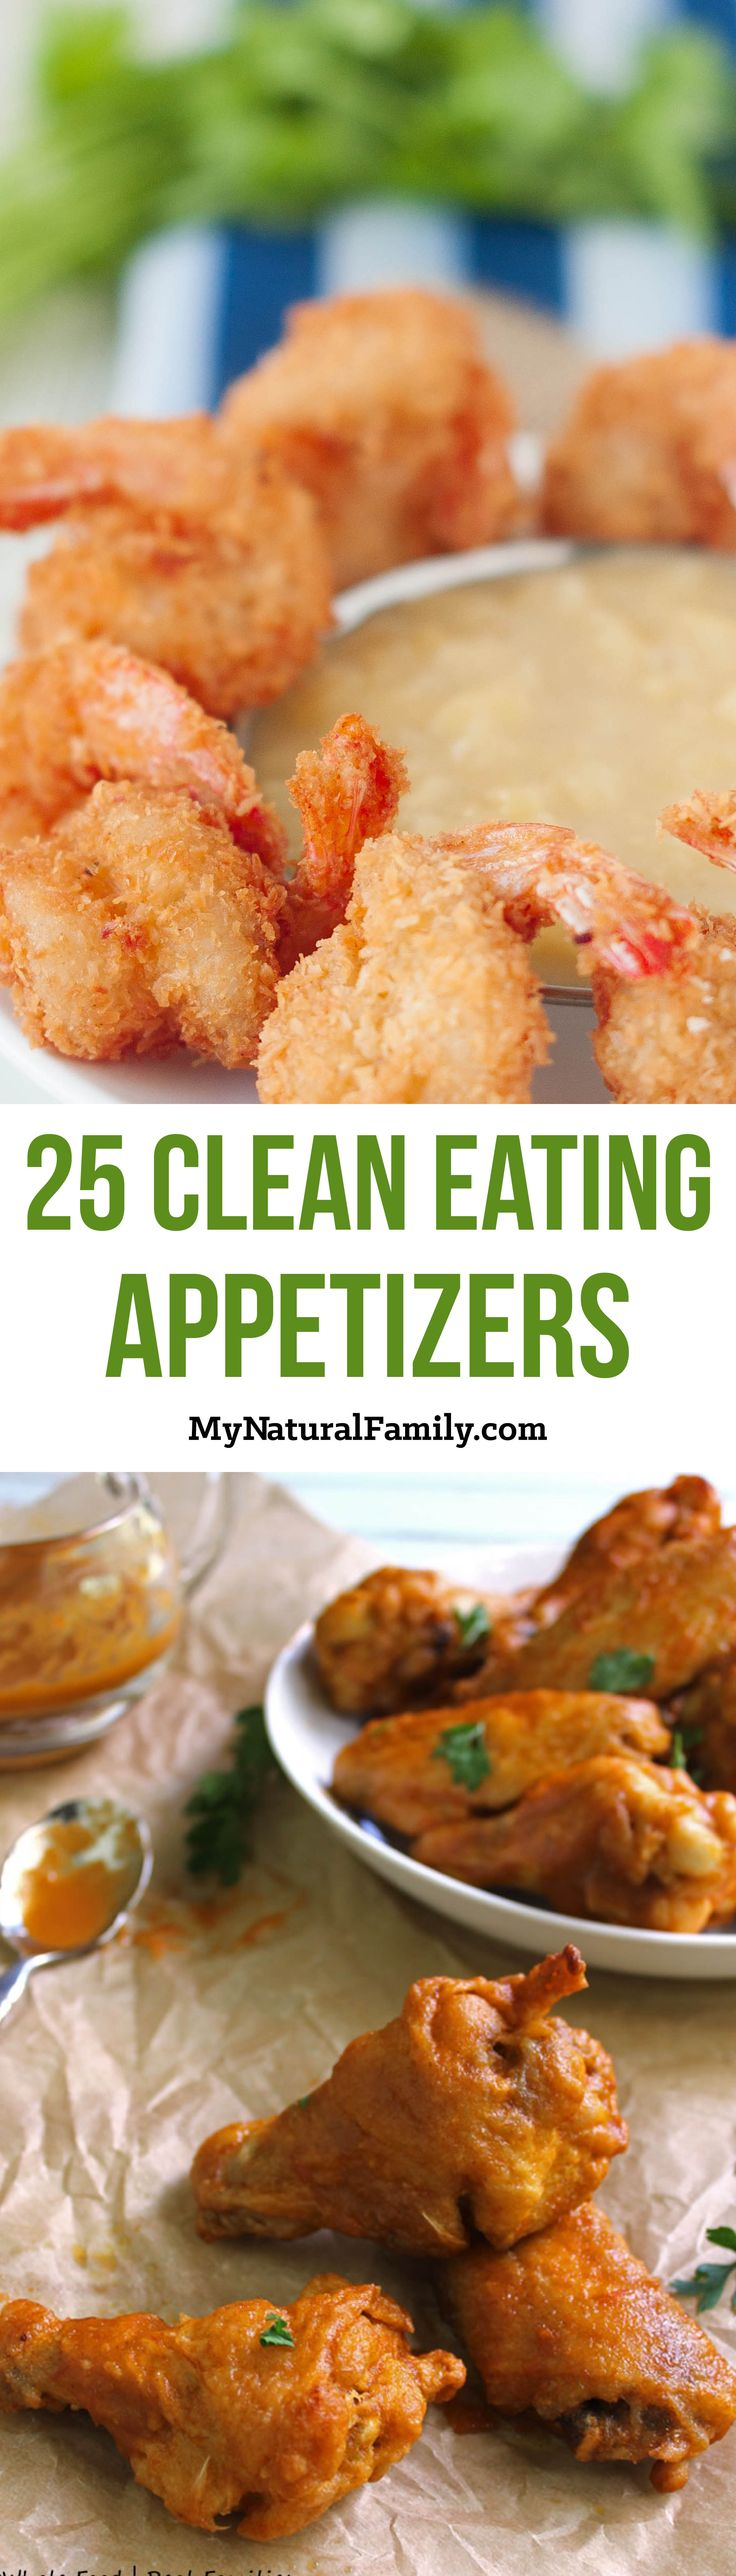 25 Easy, Cheap Clean Eating Appetizers Recipes - I love how there is an image for each recipe and a link to easily get the recipe.